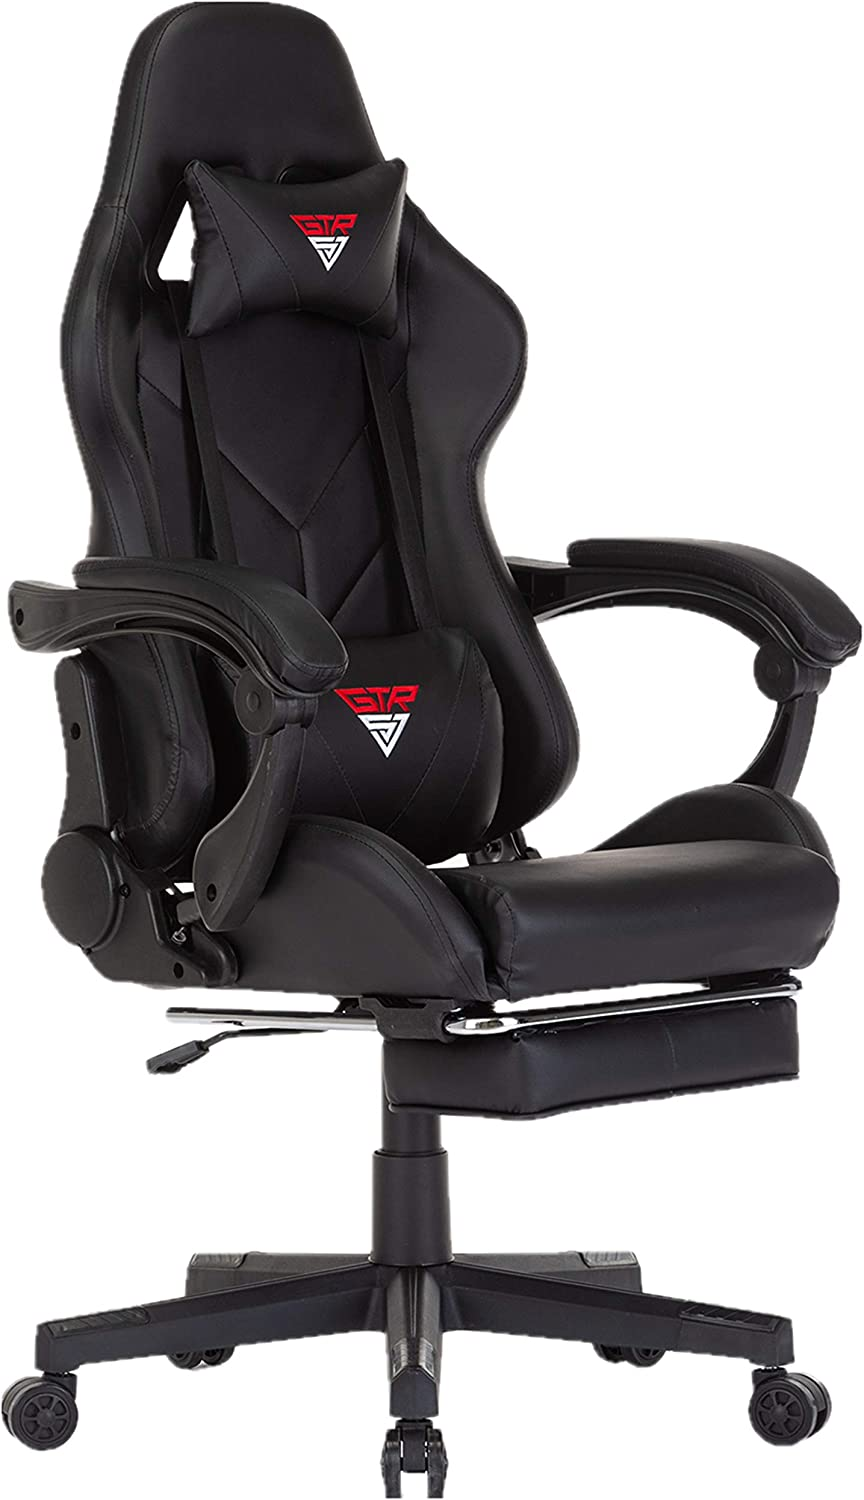 Gaming Chair Computer Office Chair Adjustable Lumbar Cushion Swivel Rocker Recliner Leather High Back Ergonomic Computer Desk Chair with Arms and Retractable Footrest (Carbon)